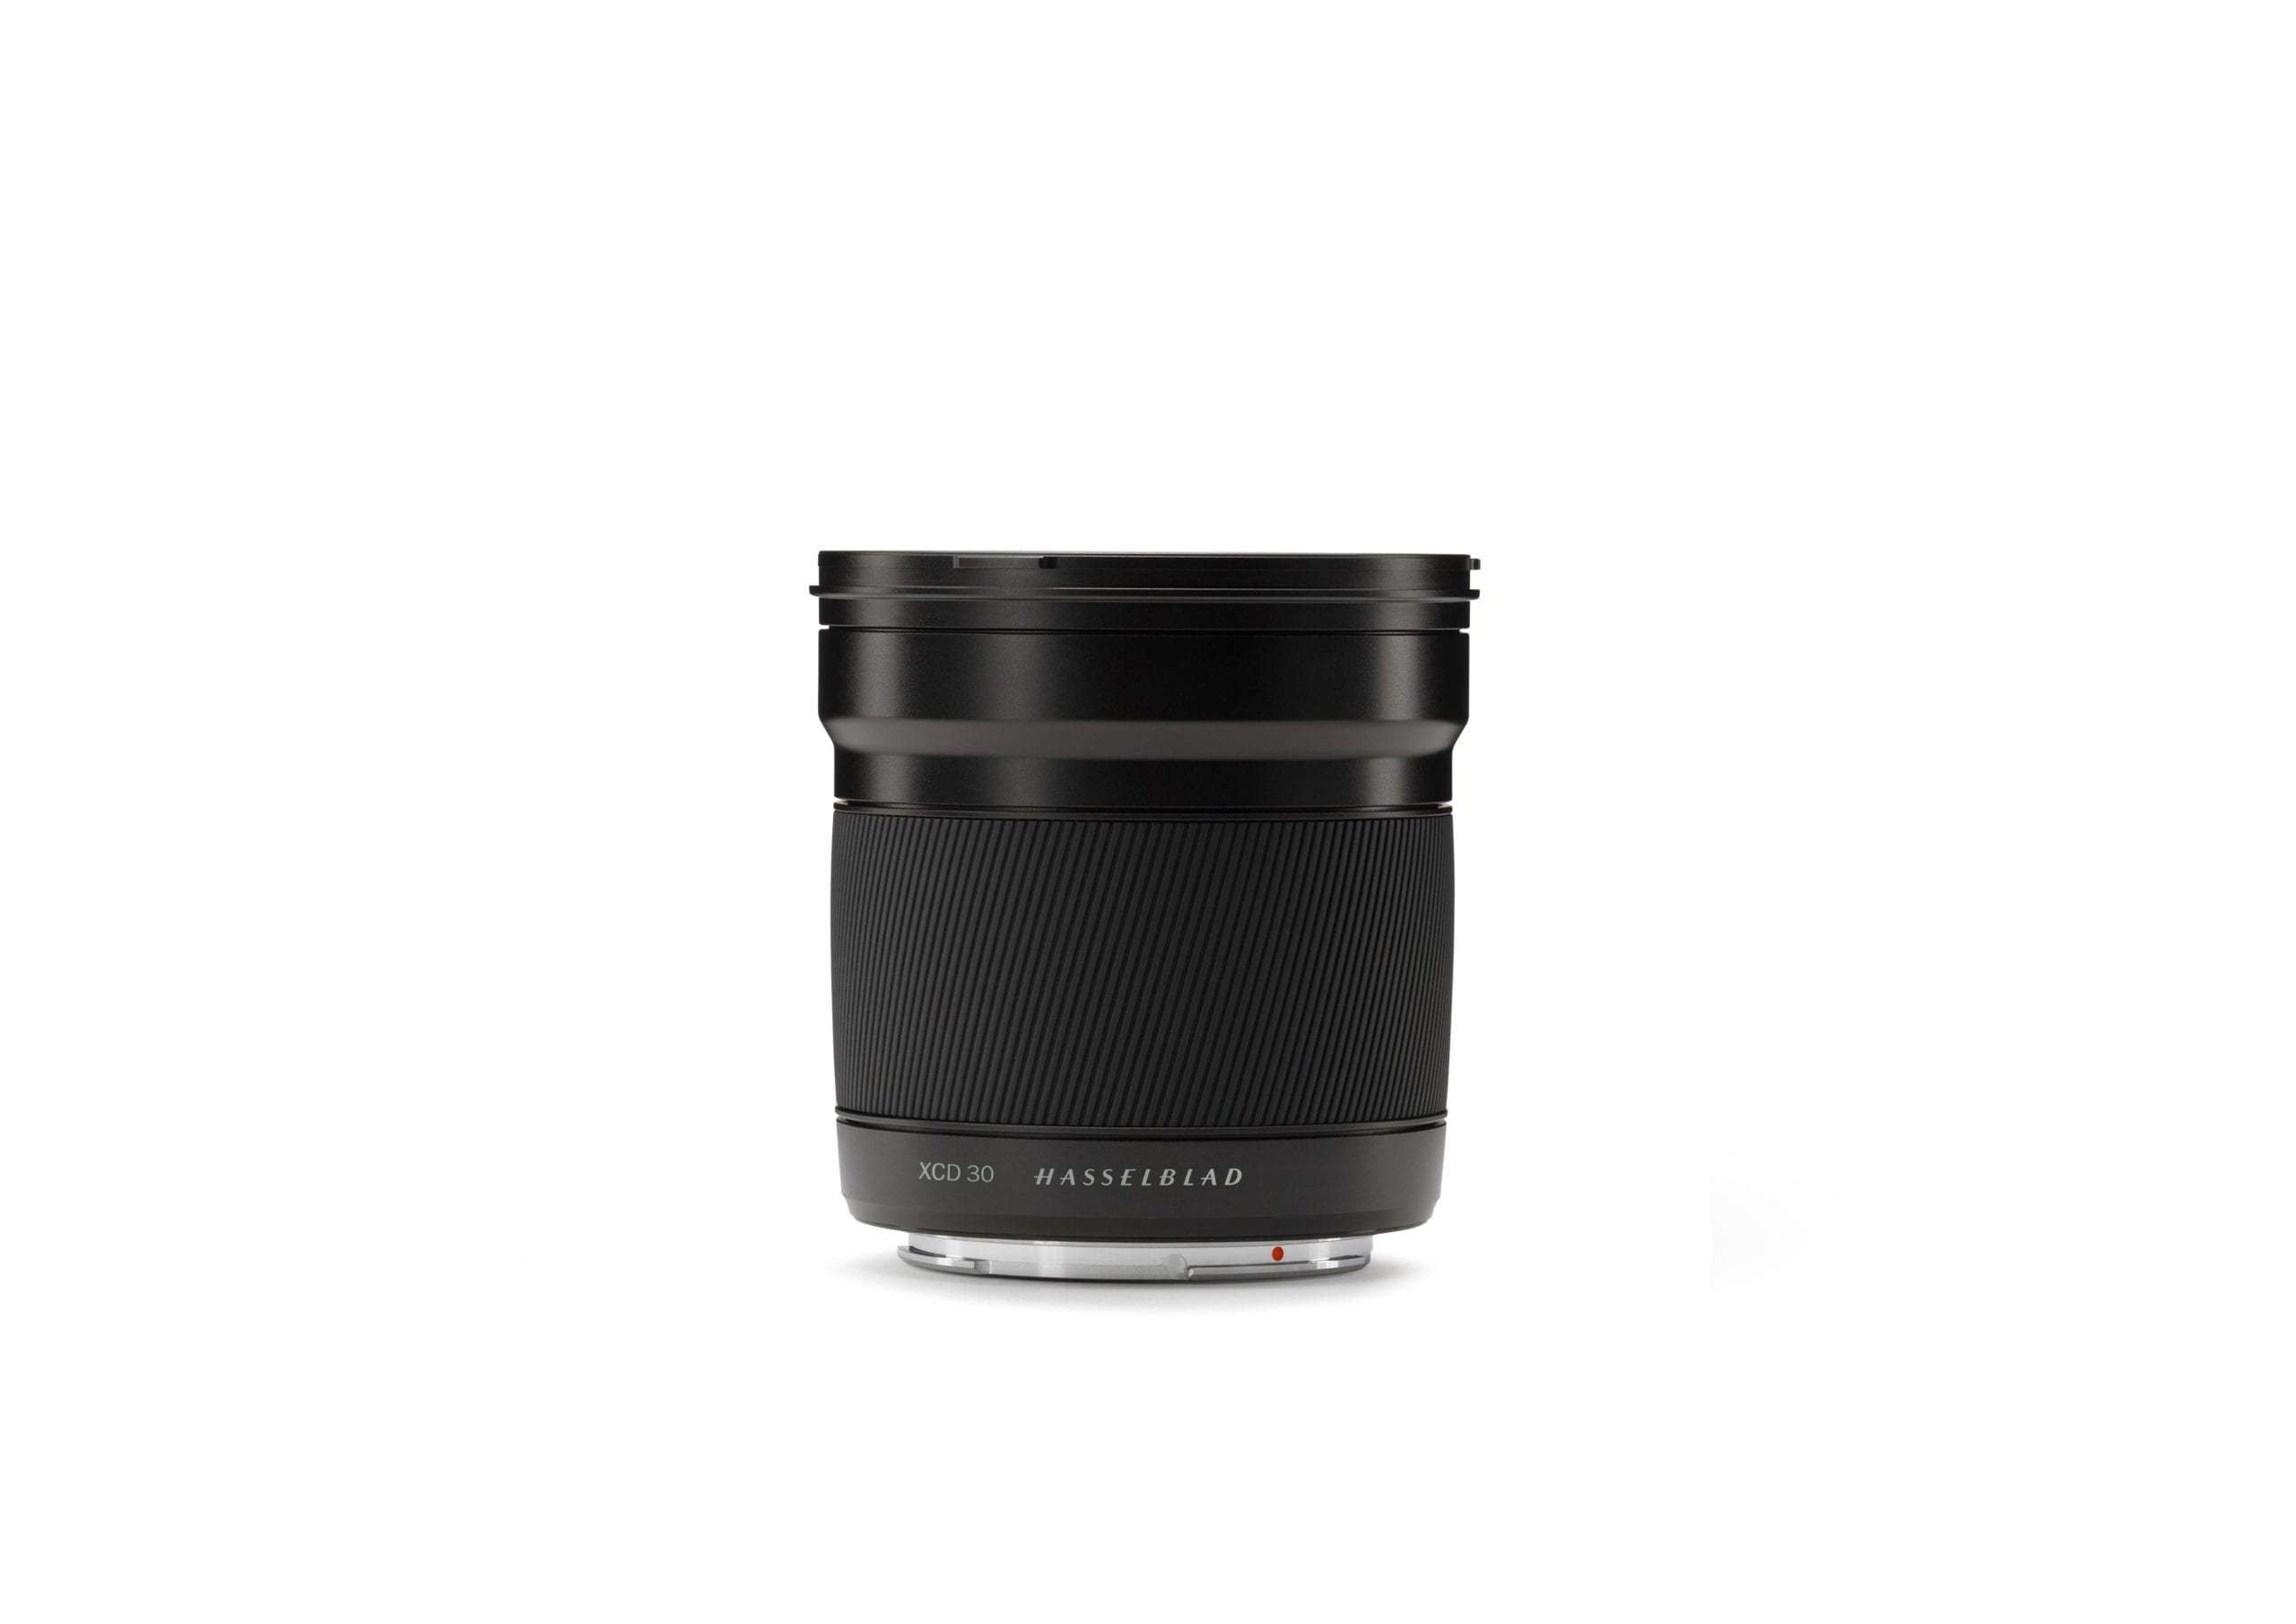 Hasselblad XCD 30mm lens